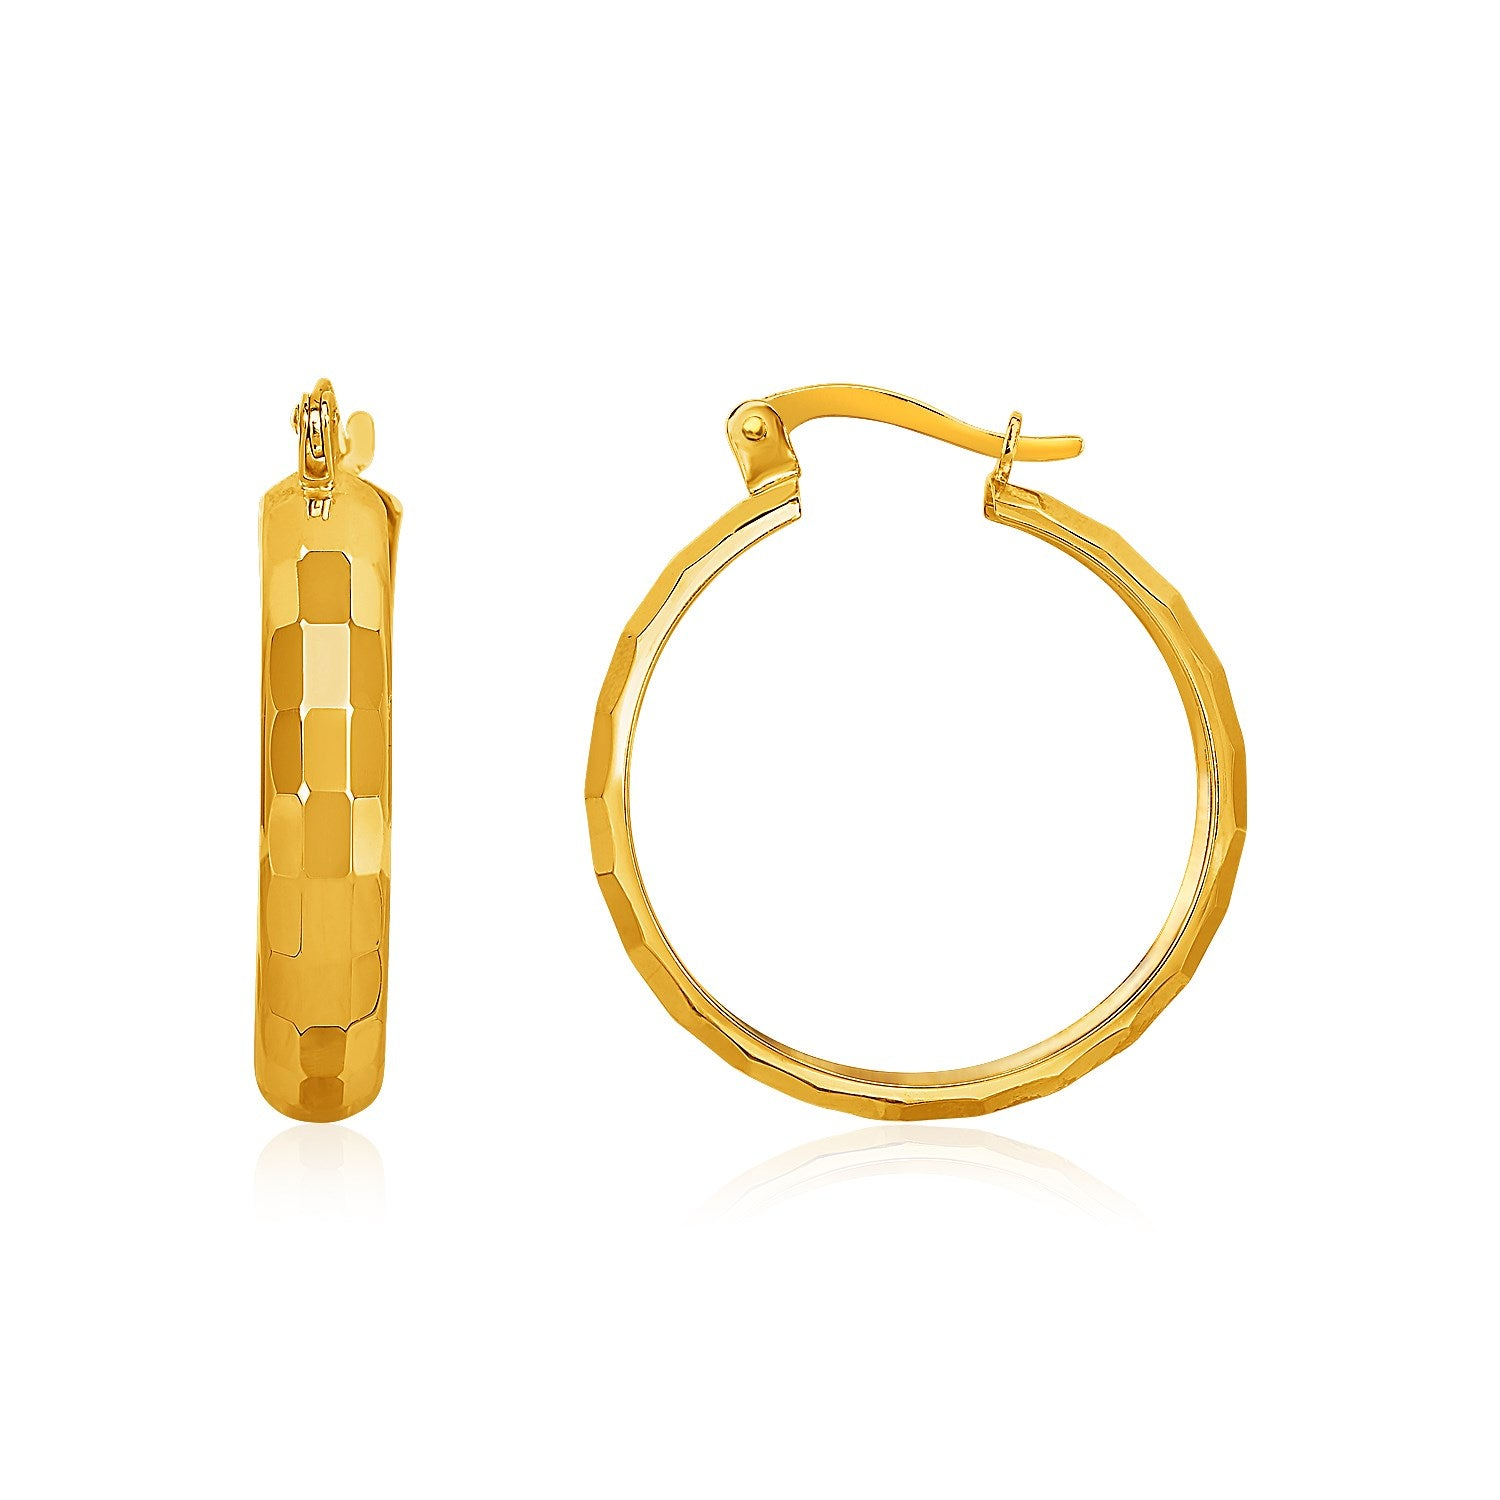 Uniquely Designer Monaco Style 14K Yellow Gold Geometric Textured Hoop Style Earrings